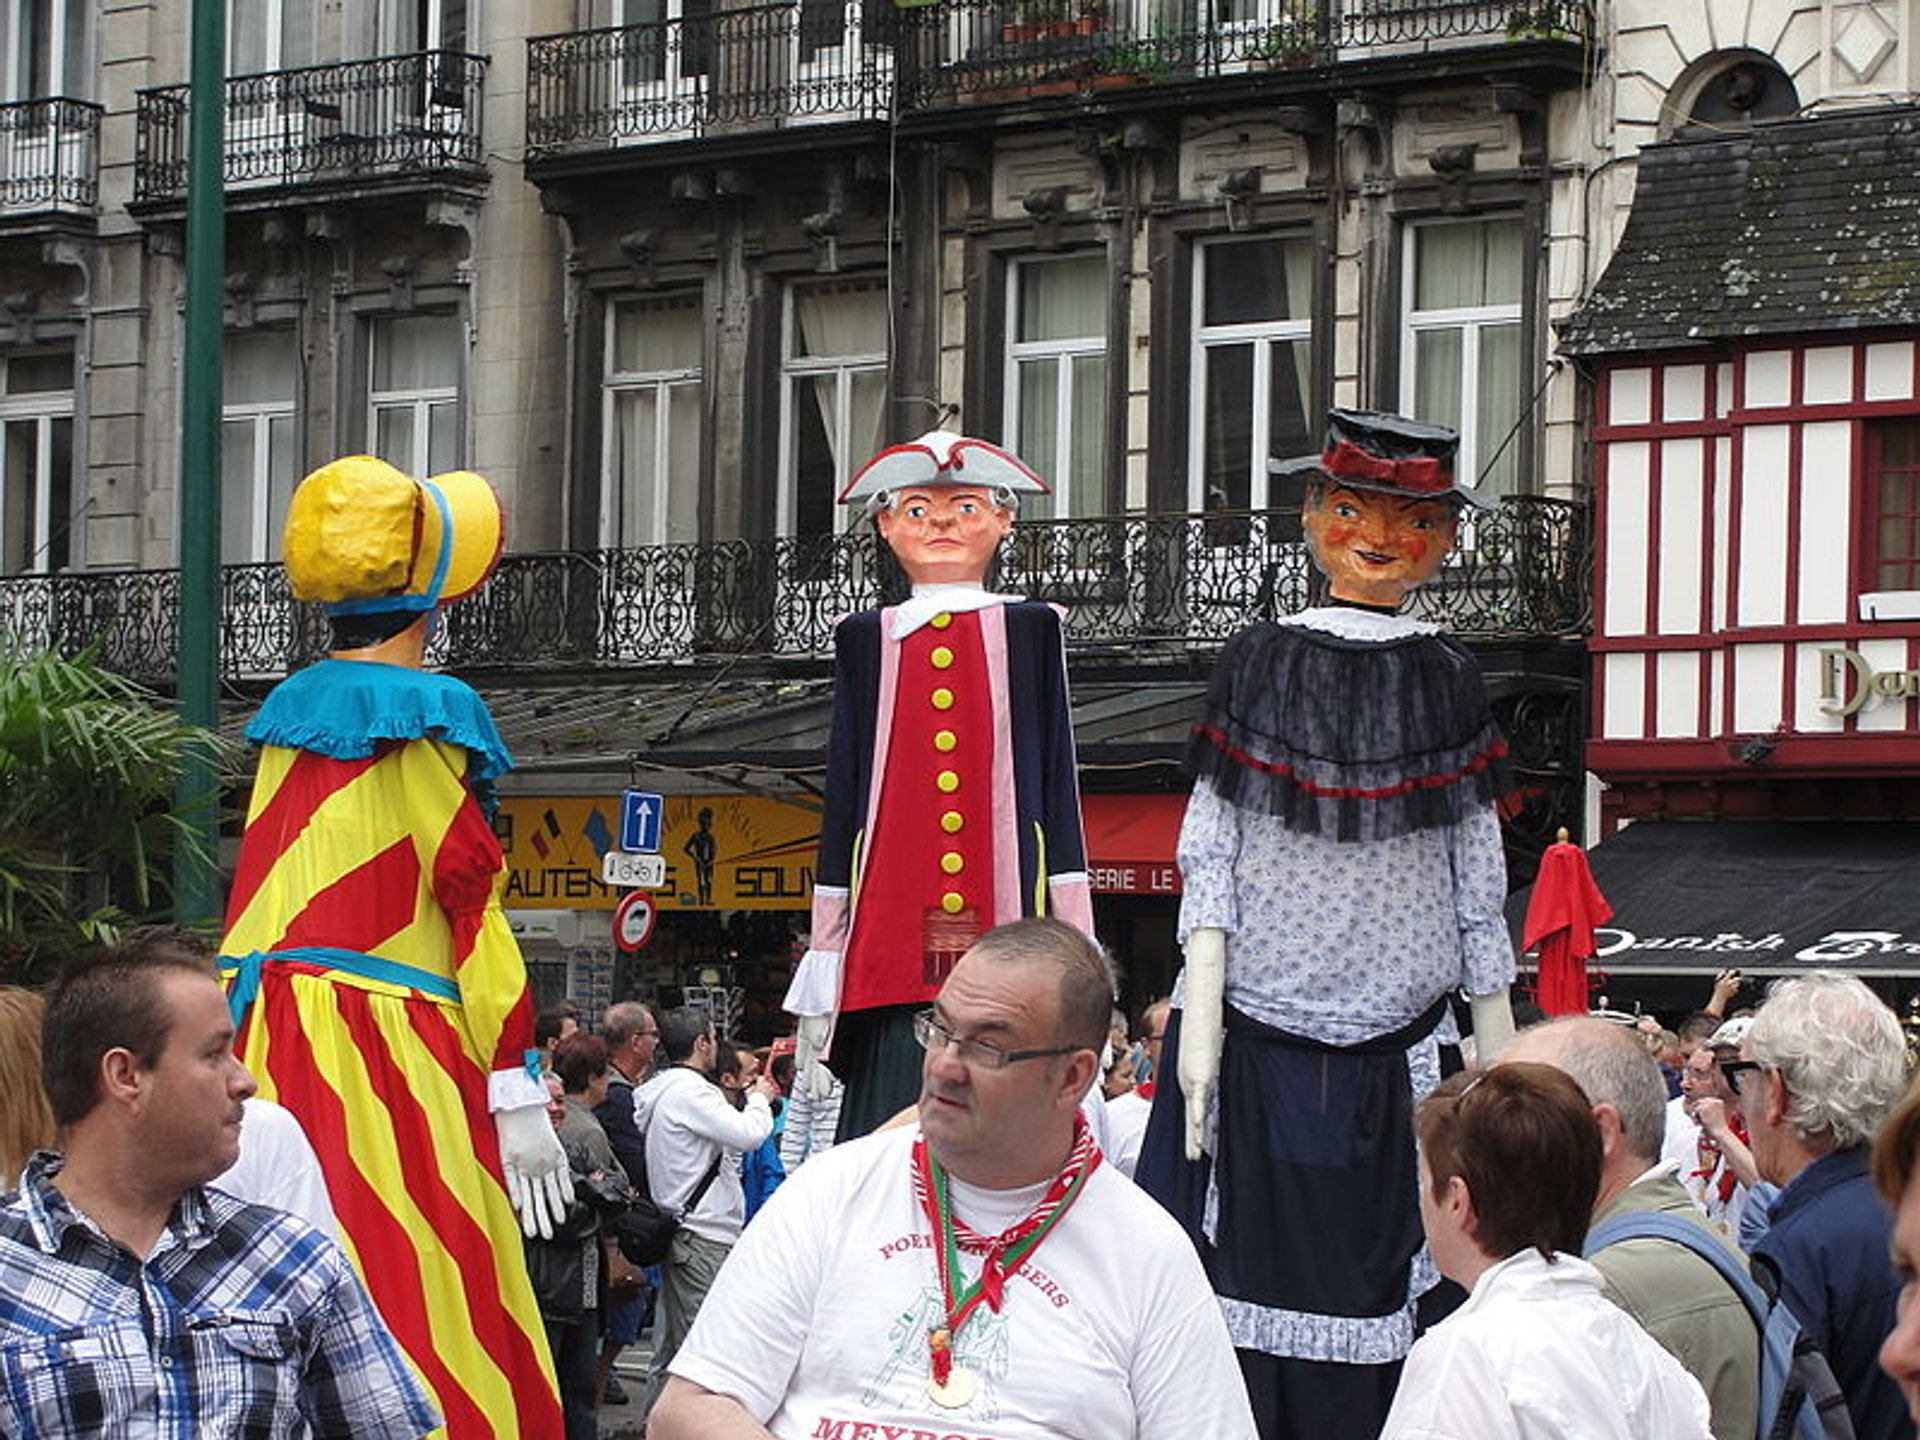 Parade of the giants of the Meyboom in Brussels prior to the planting 2020